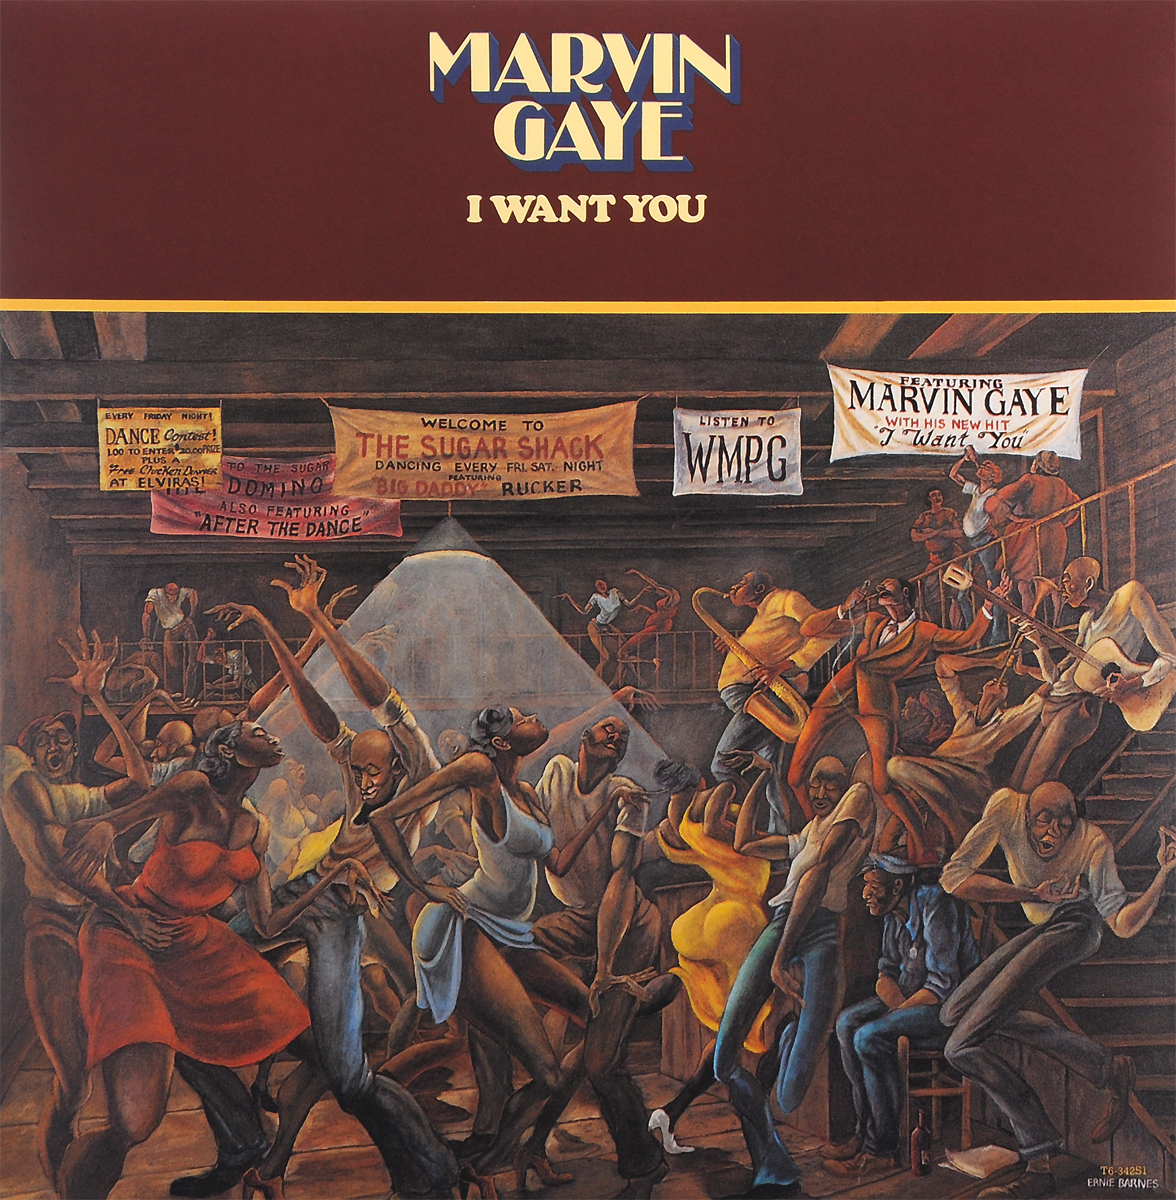 Марвин Гэй Marvin Gaye. I Want You (LP) марвин гэй marvin gaye volume jne 1961 1965 7 lp